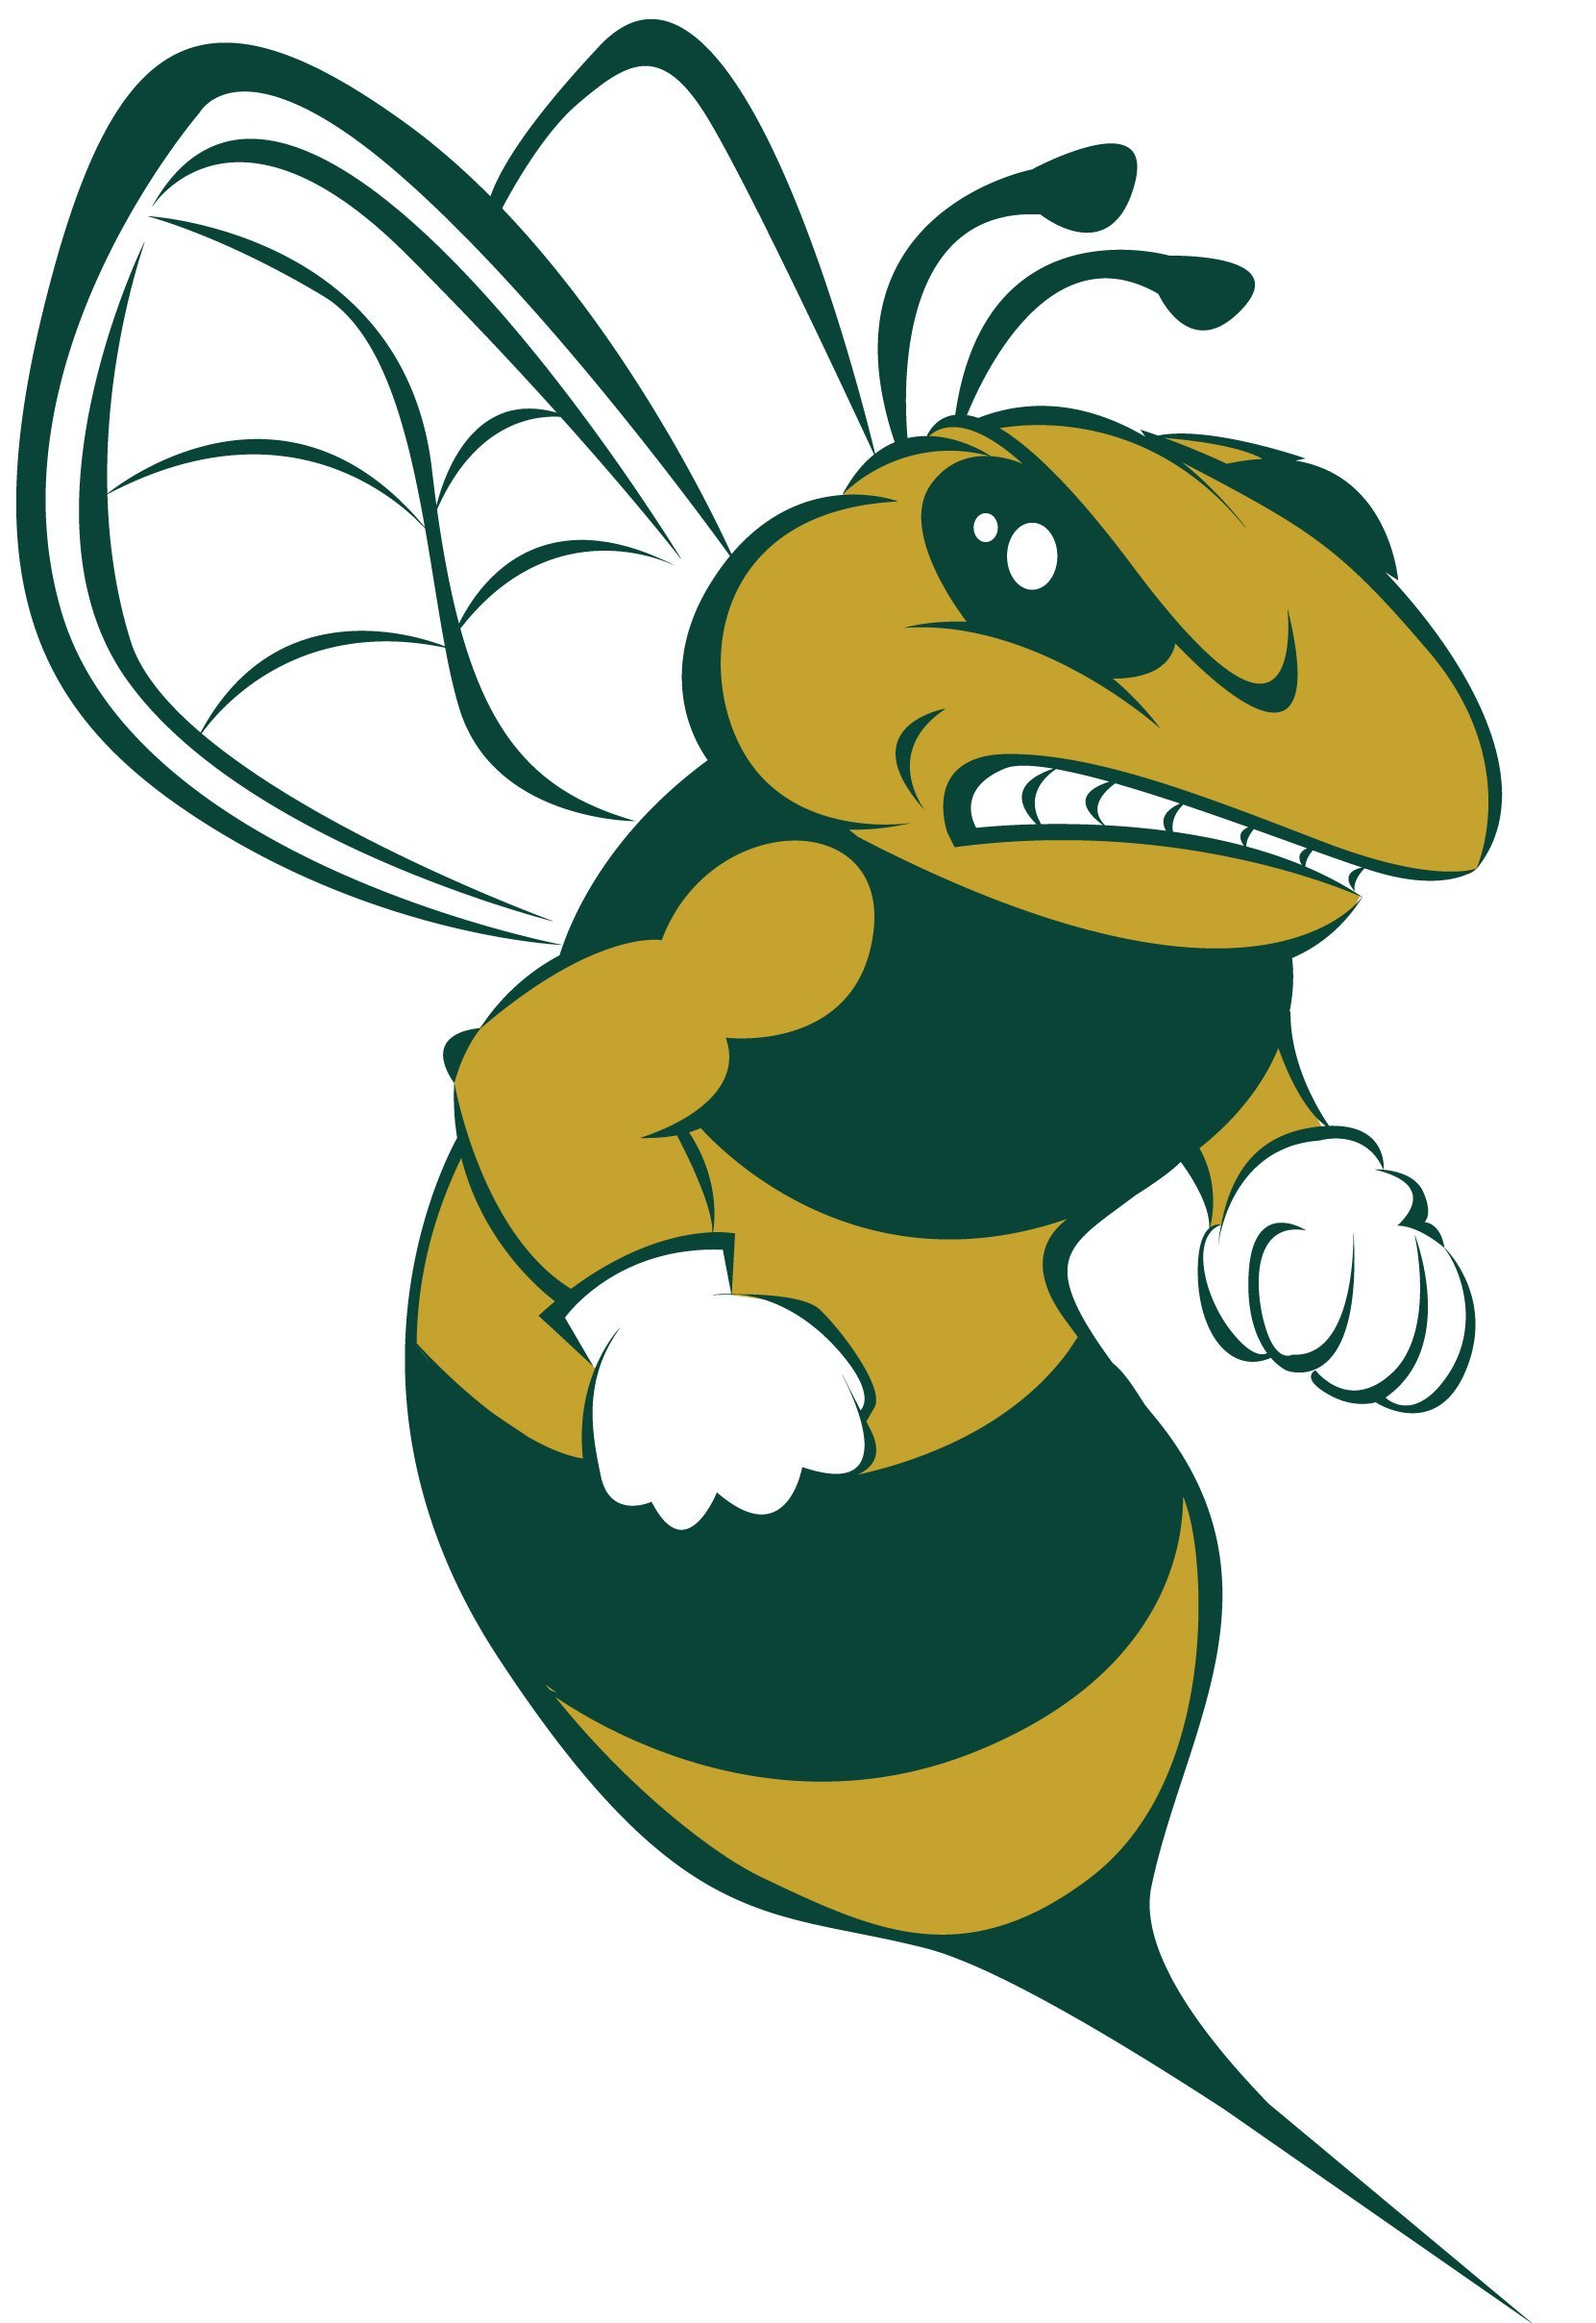 The Melbourne Central Catholic High School Hustlers were named fourth best high school mascot in Florida by Aceable Drivers Ed